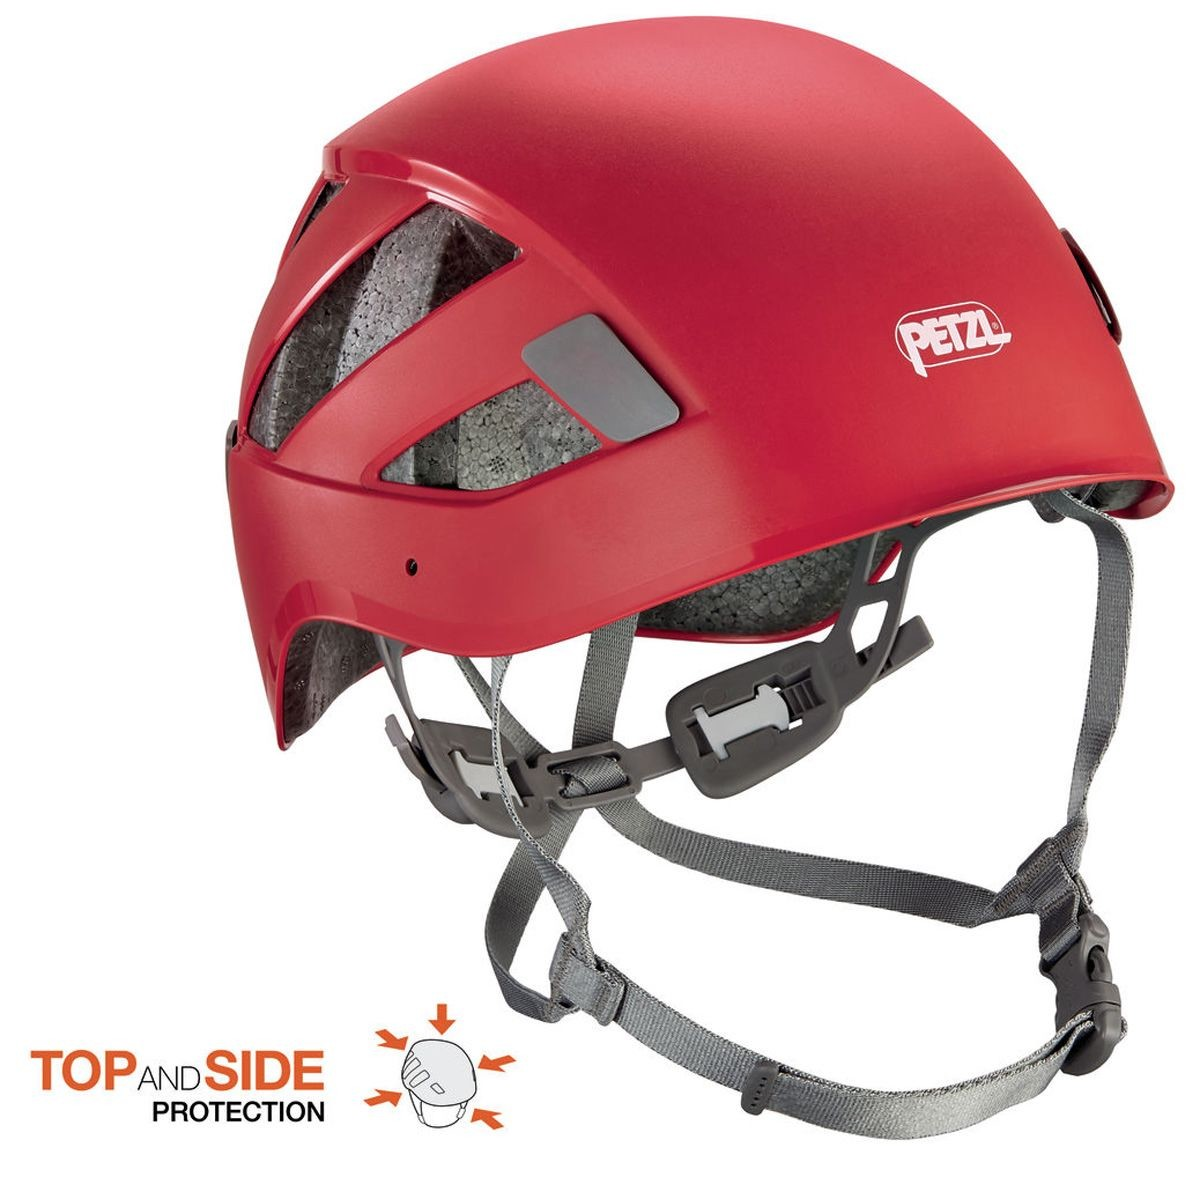 Petzl Boreo, con Top And Side Protection